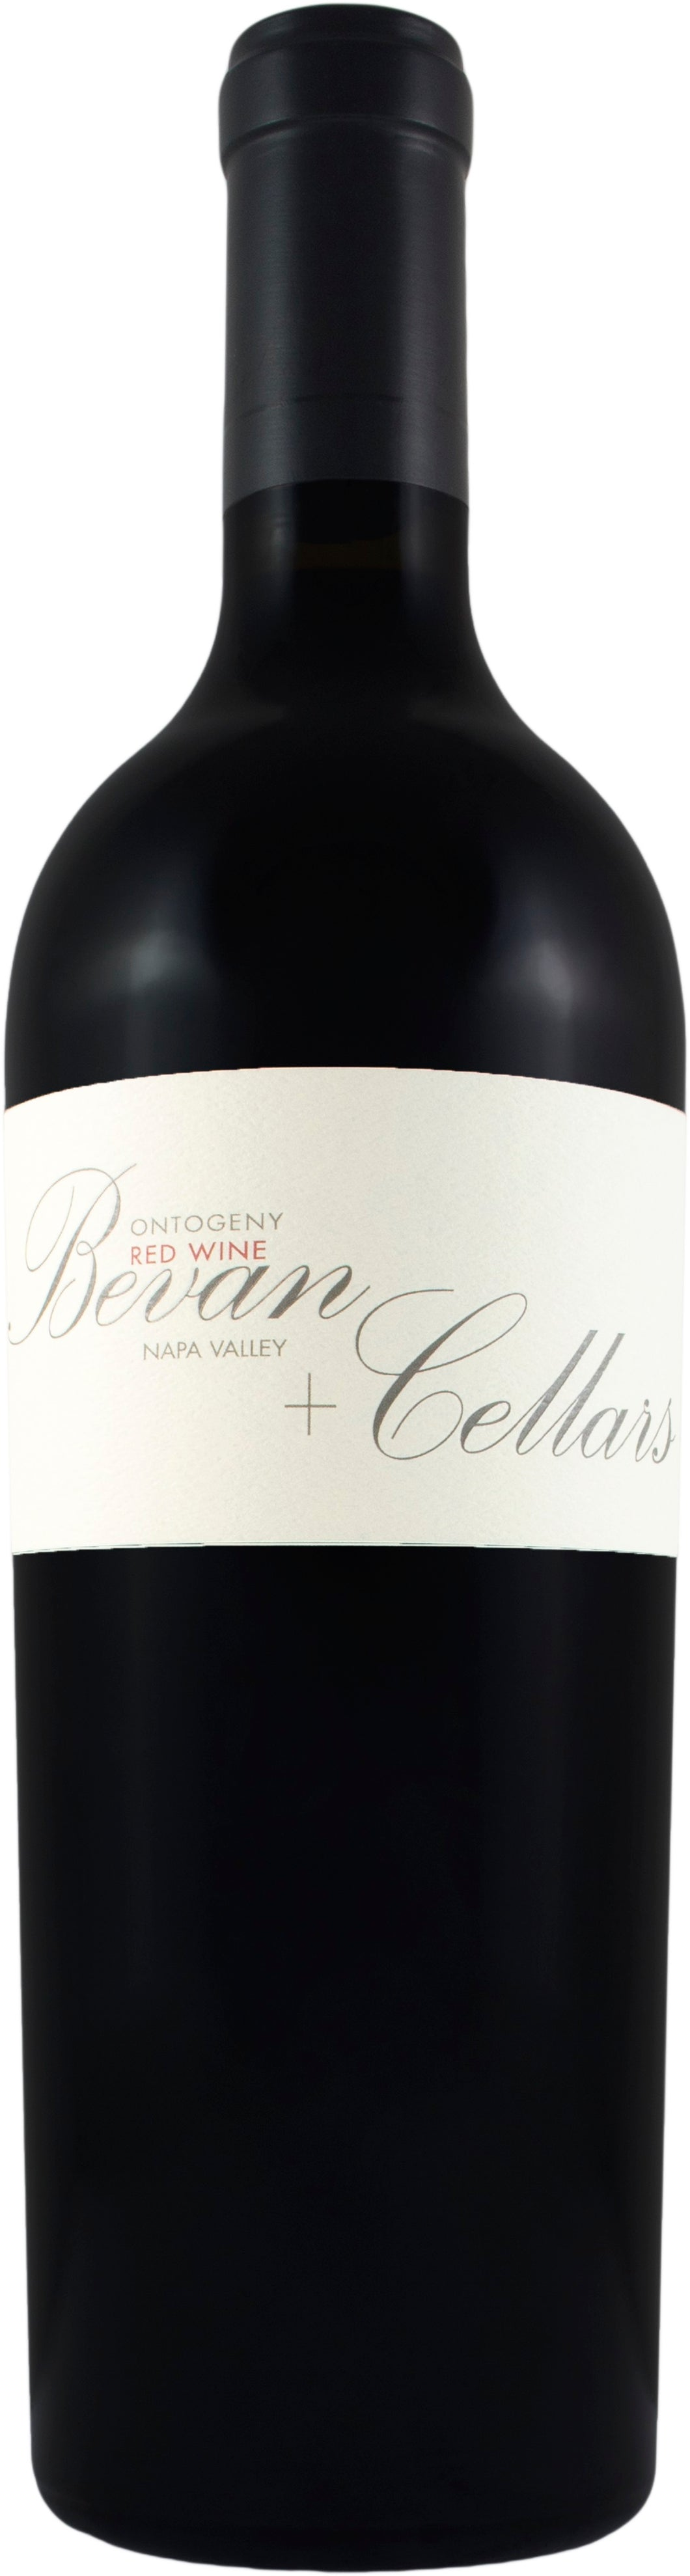 Bevan Cellars Red Tench Vineyard 2018